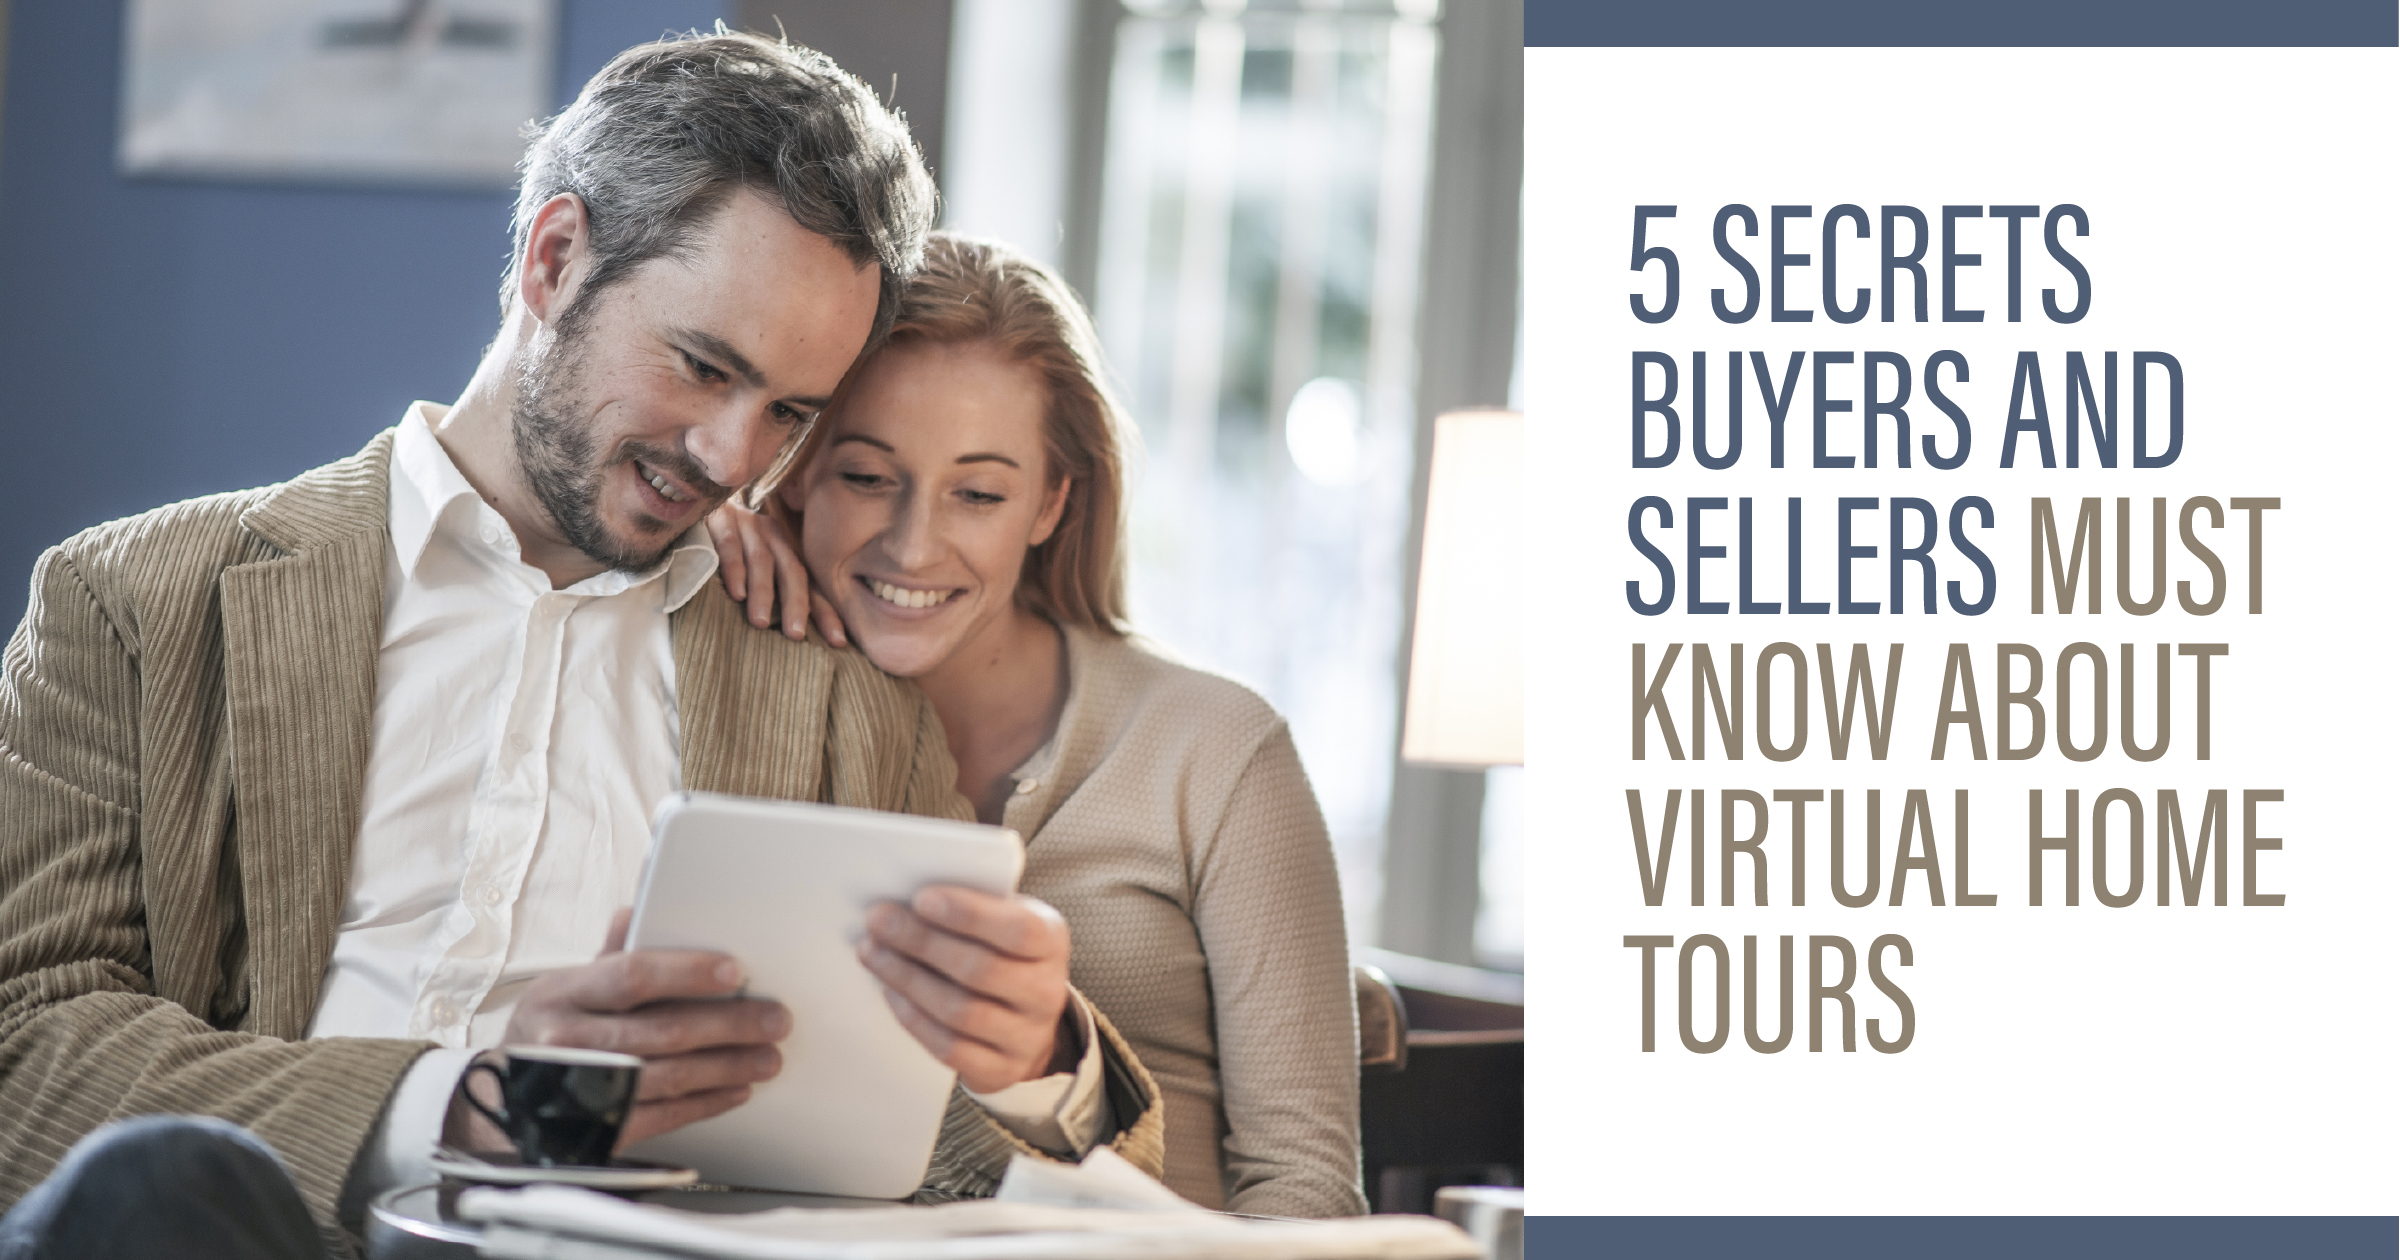 5 secrets buyers and sellers must know.